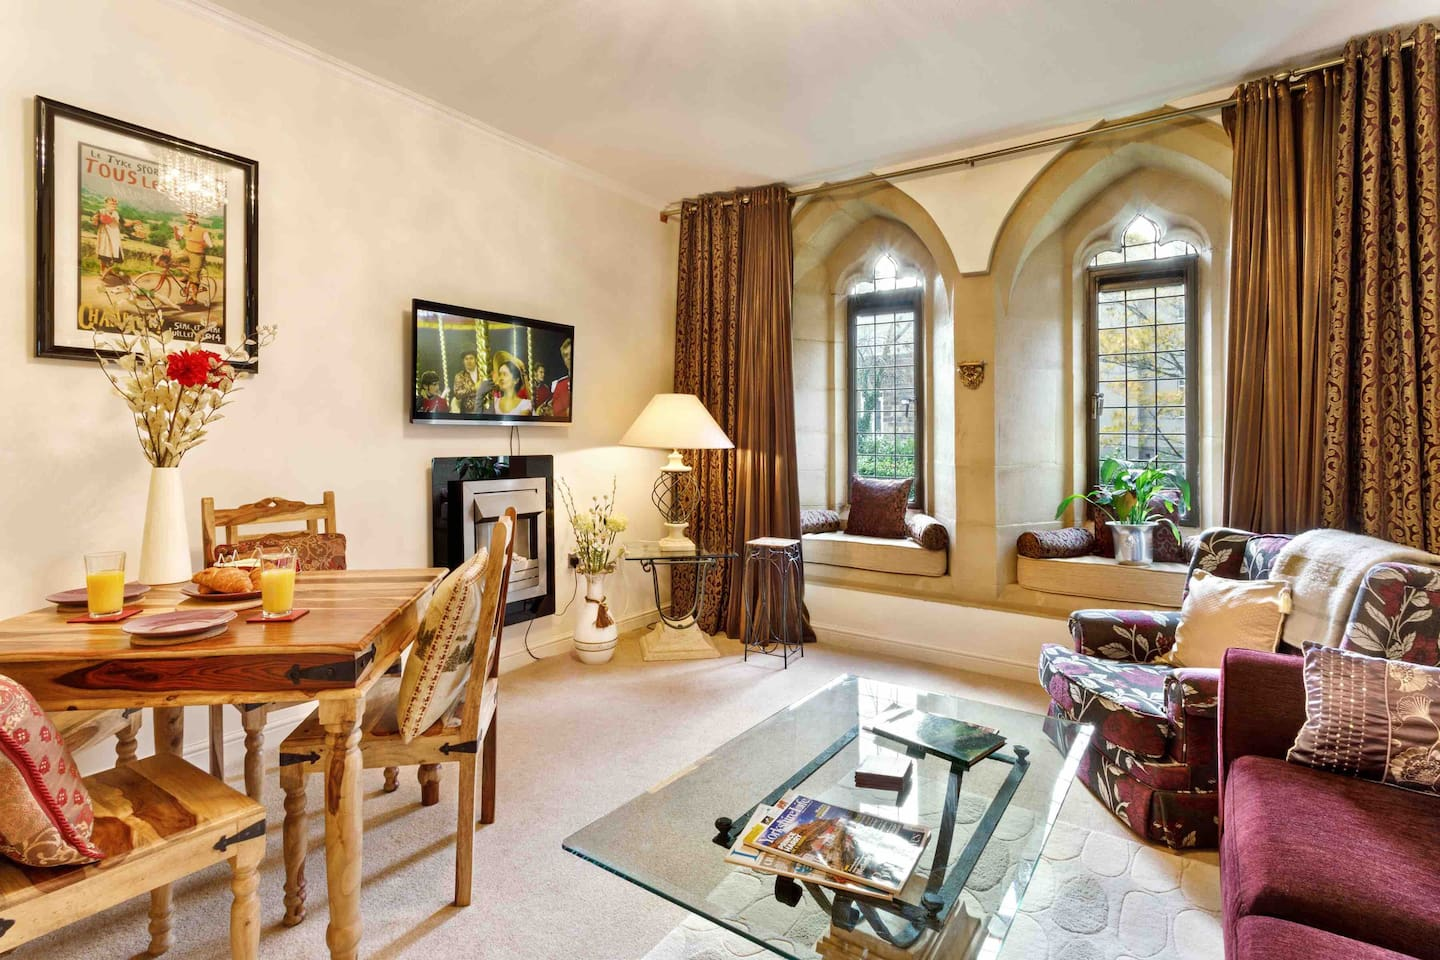 Spacious living area with TV/DVD, two window seats, massive original church windows, dining area and a sofabed